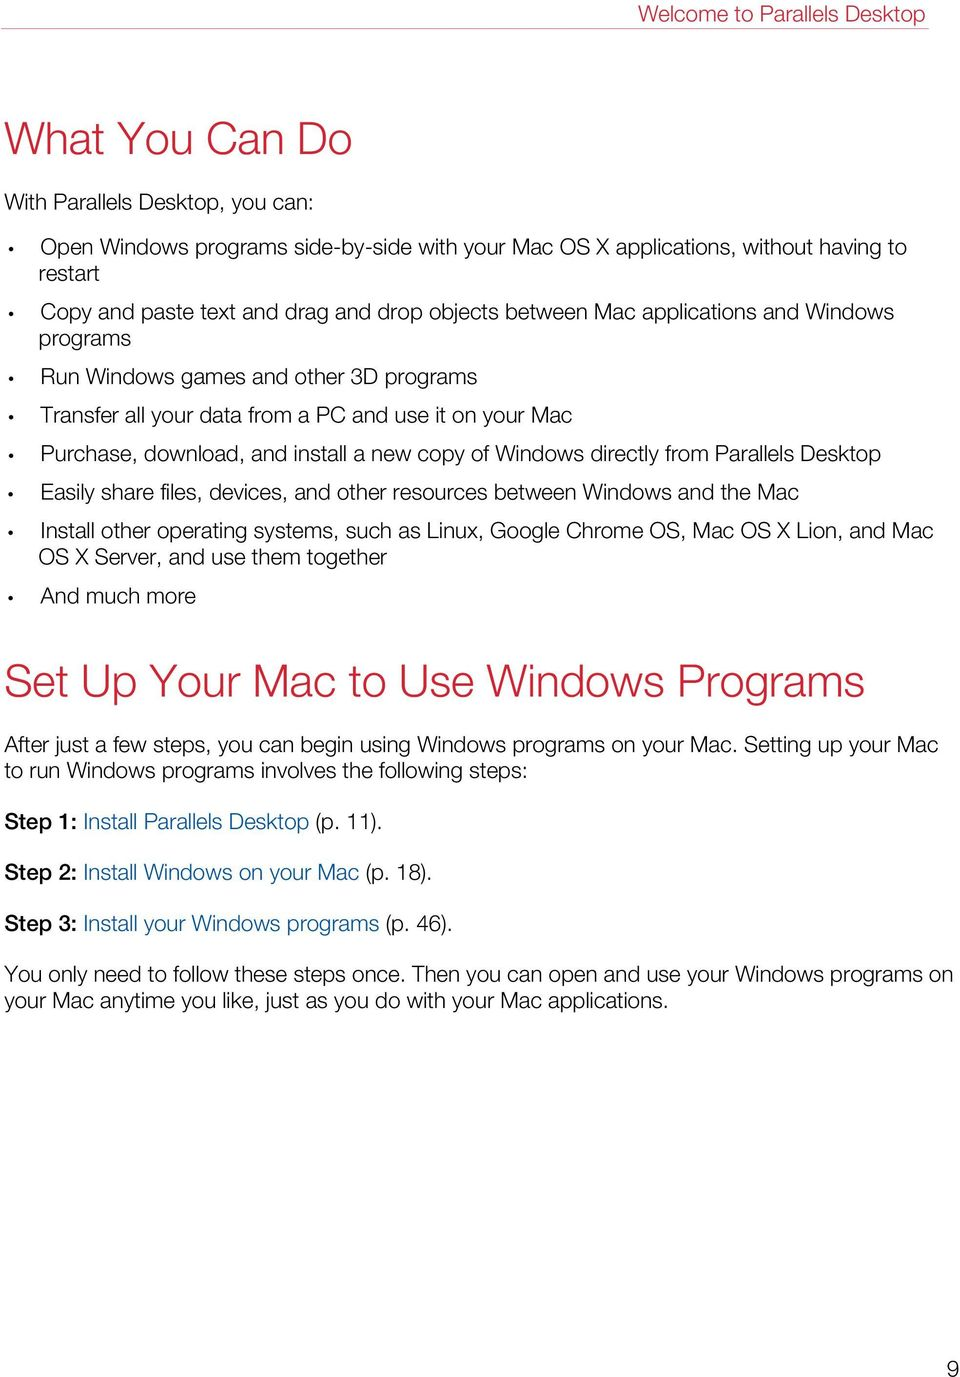 new copy of Windows directly from Parallels Desktop Easily share files, devices, and other resources between Windows and the Mac Install other operating systems, such as Linux, Google Chrome OS, Mac